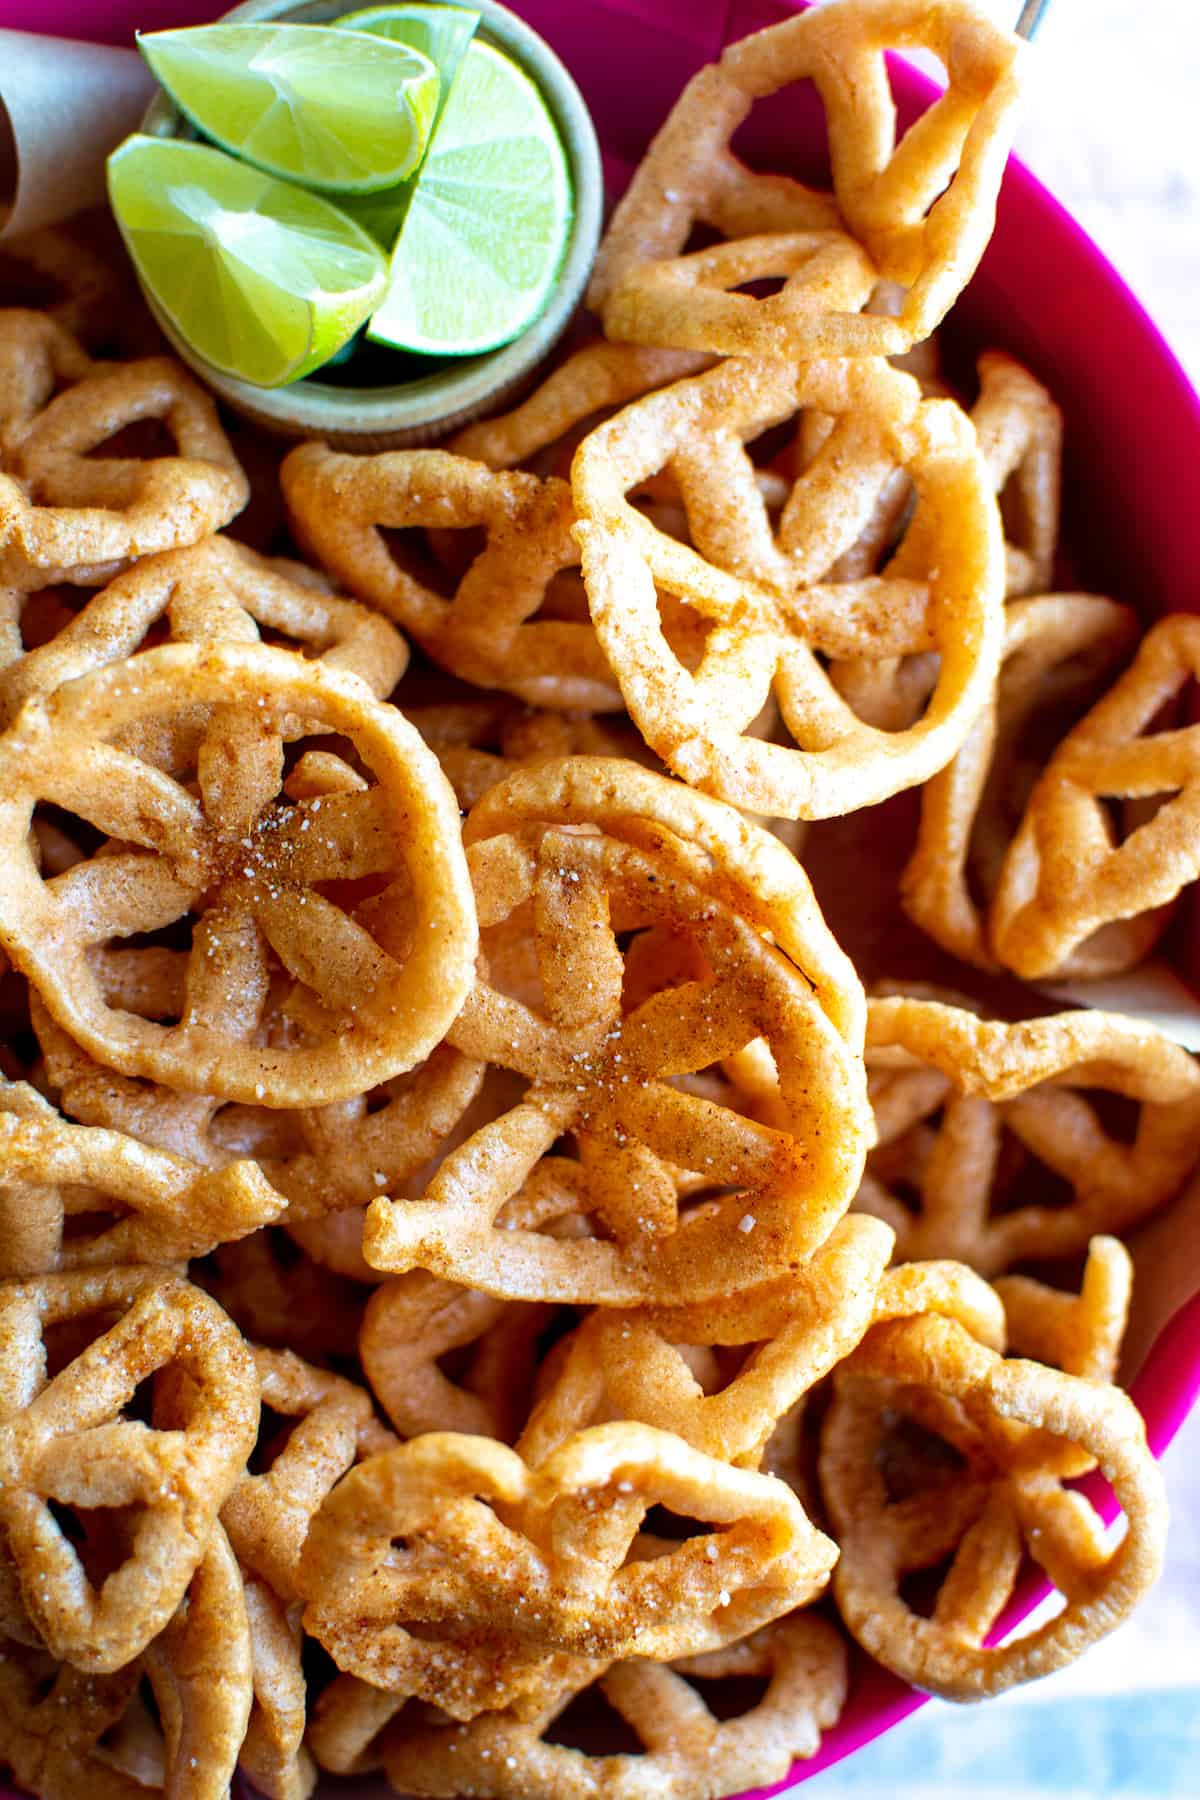 Close up image of chicharrones de harina with chili spice mix on them and lime wedges on the side.